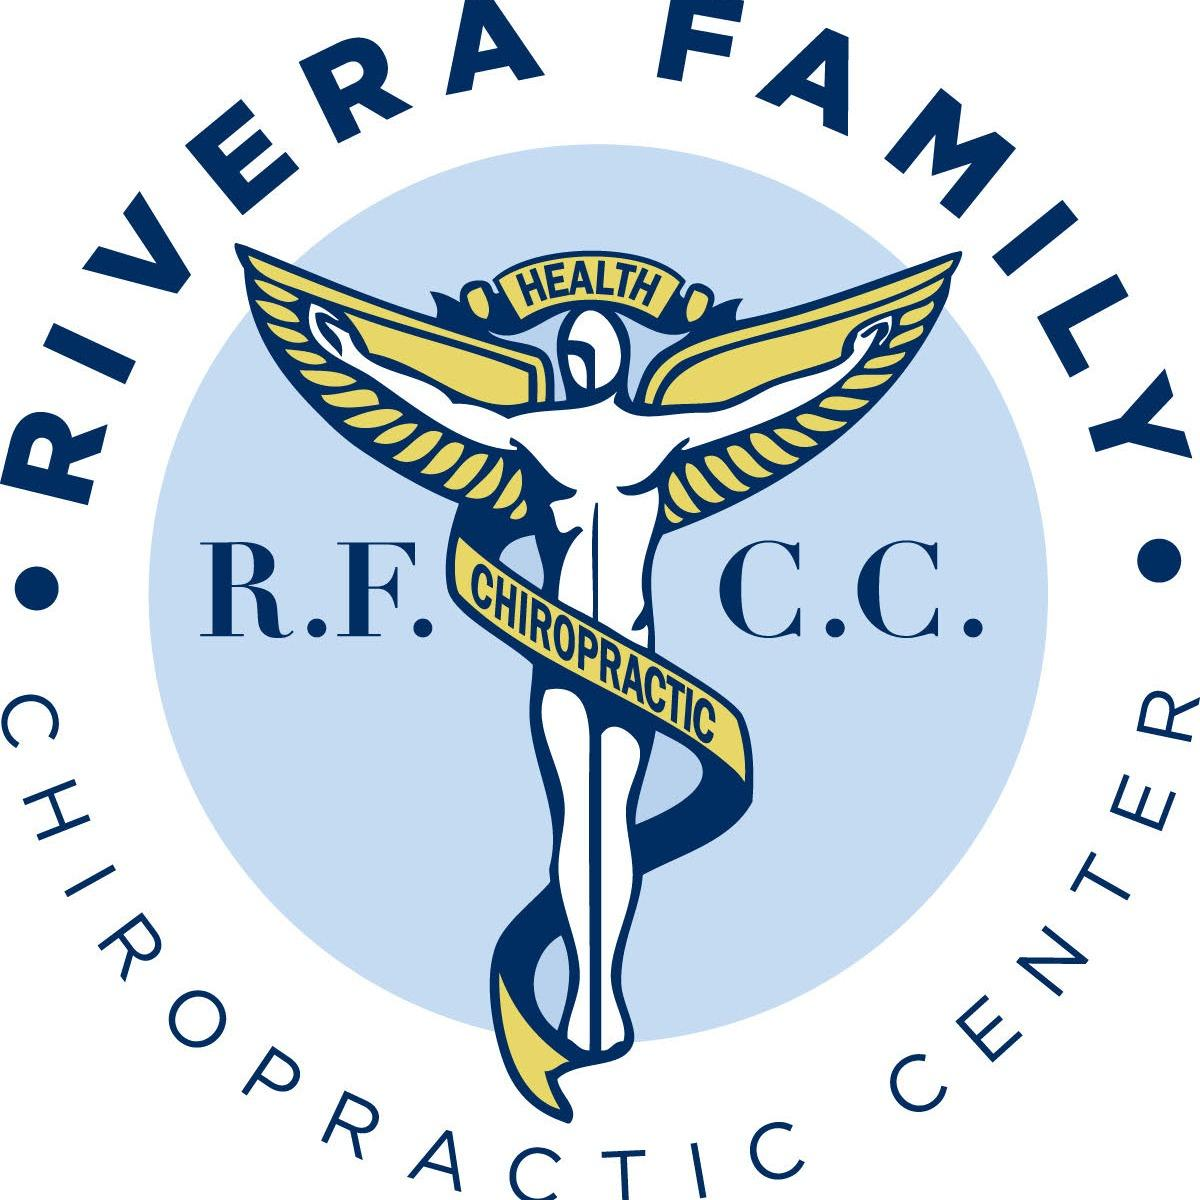 Rivera Family Chiropractic Center